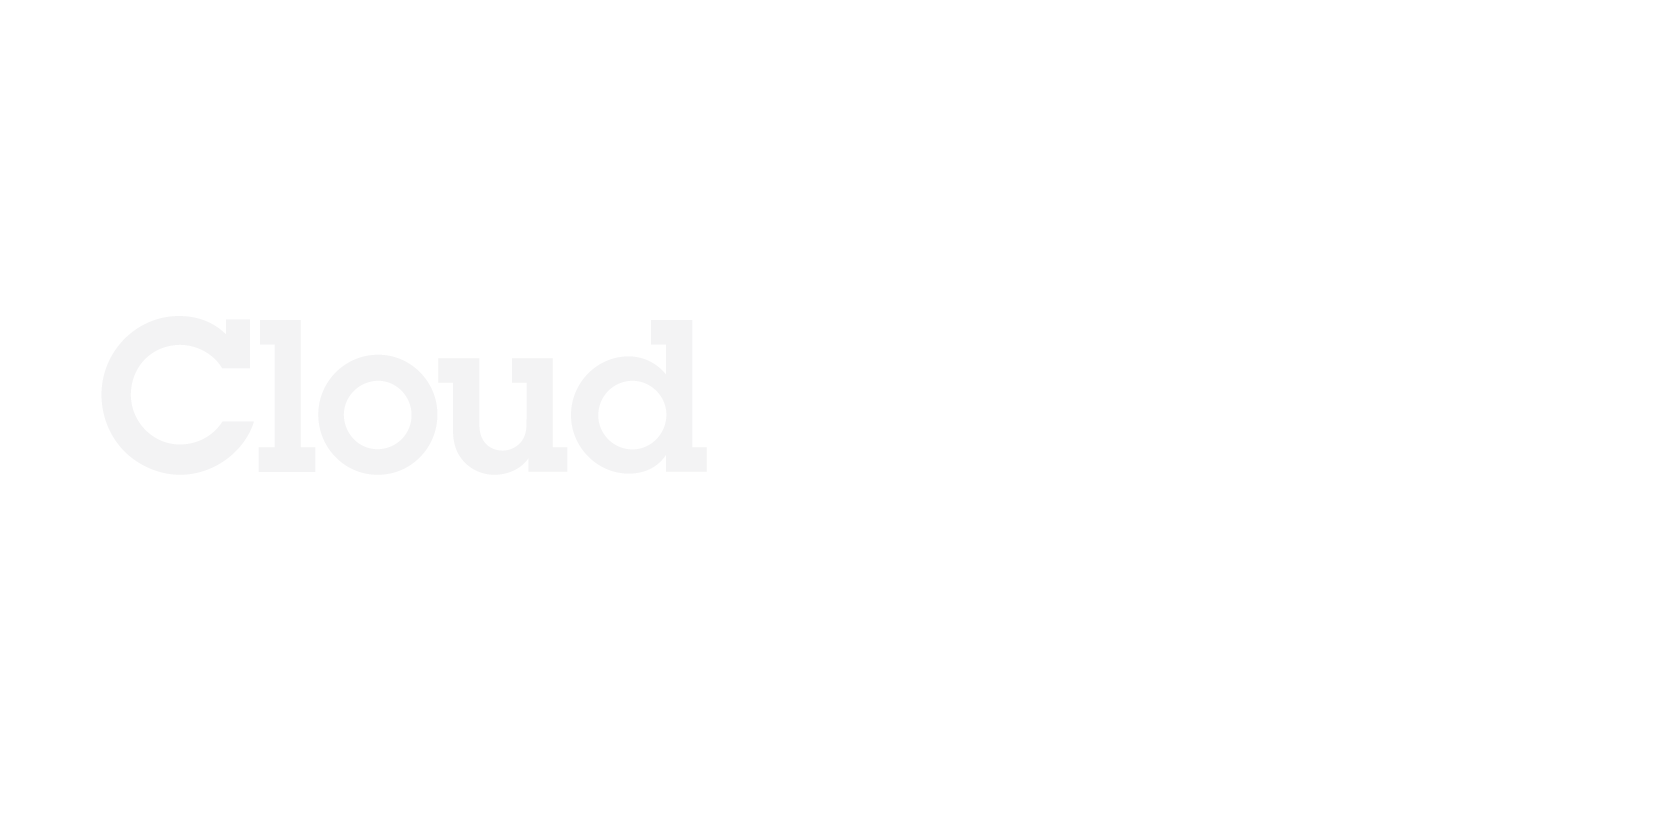 CloudPassage - Security7 Networks